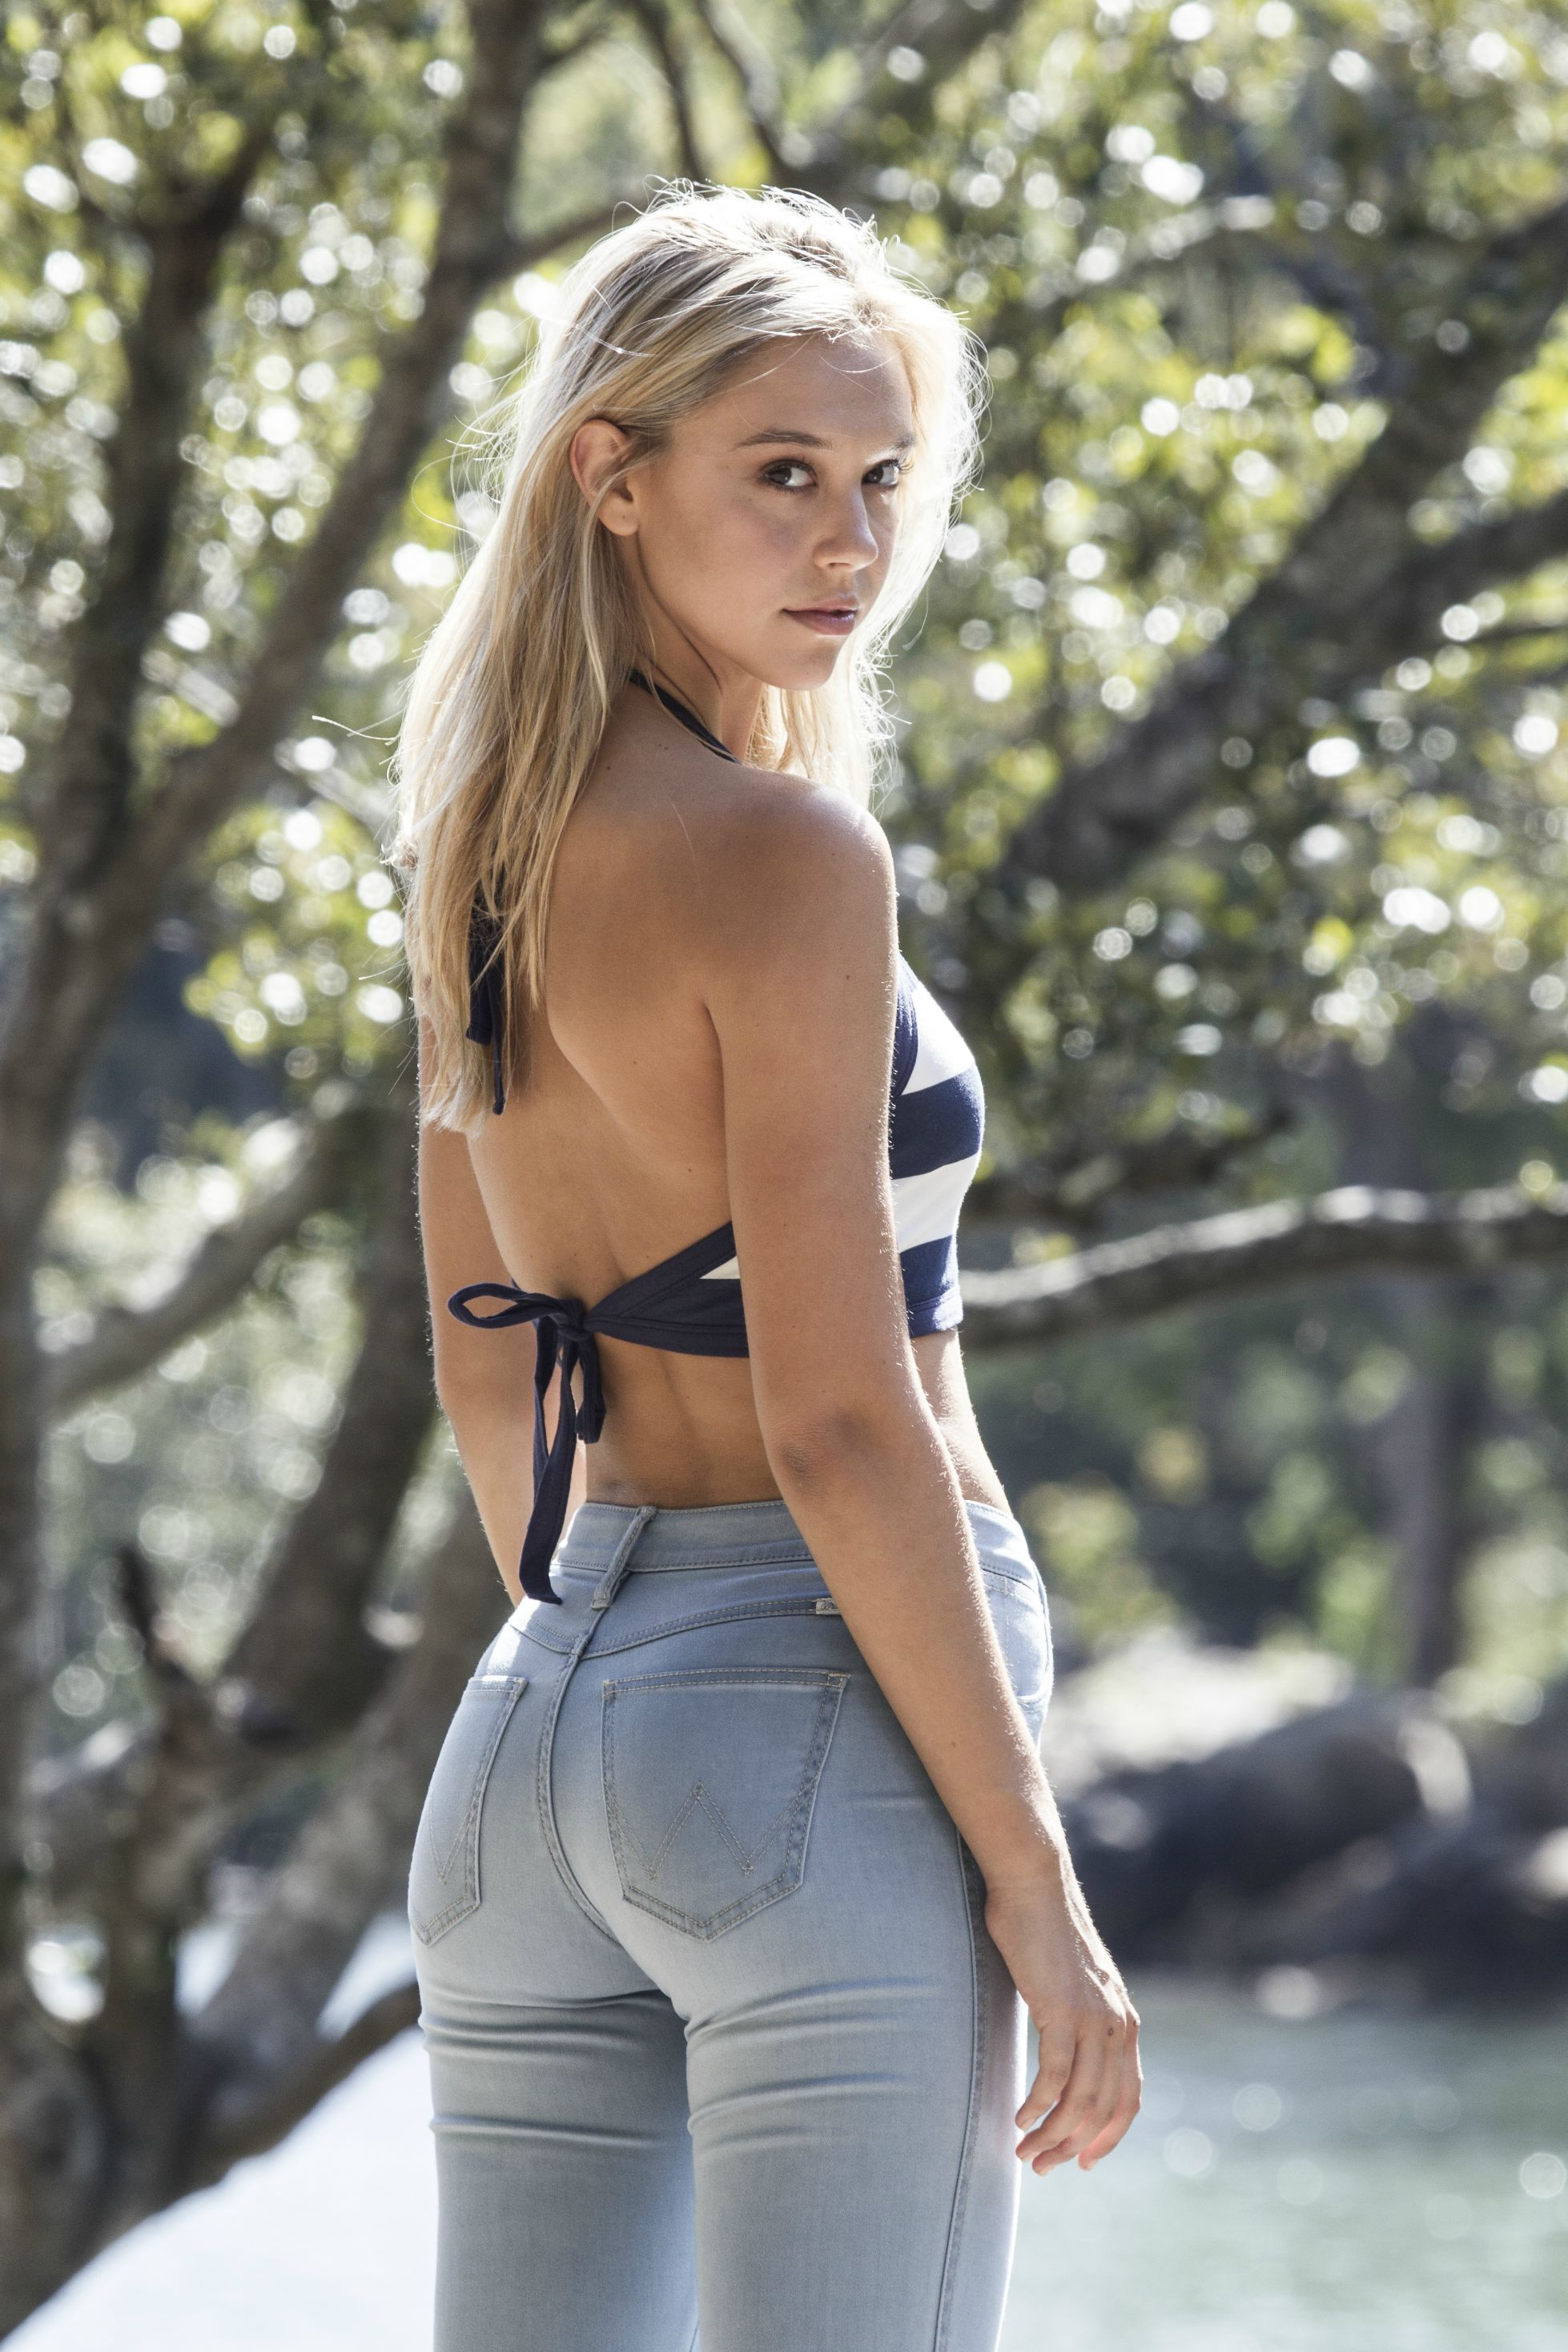 alexis ren looking back | alexis ren | pinterest | alexis ren and